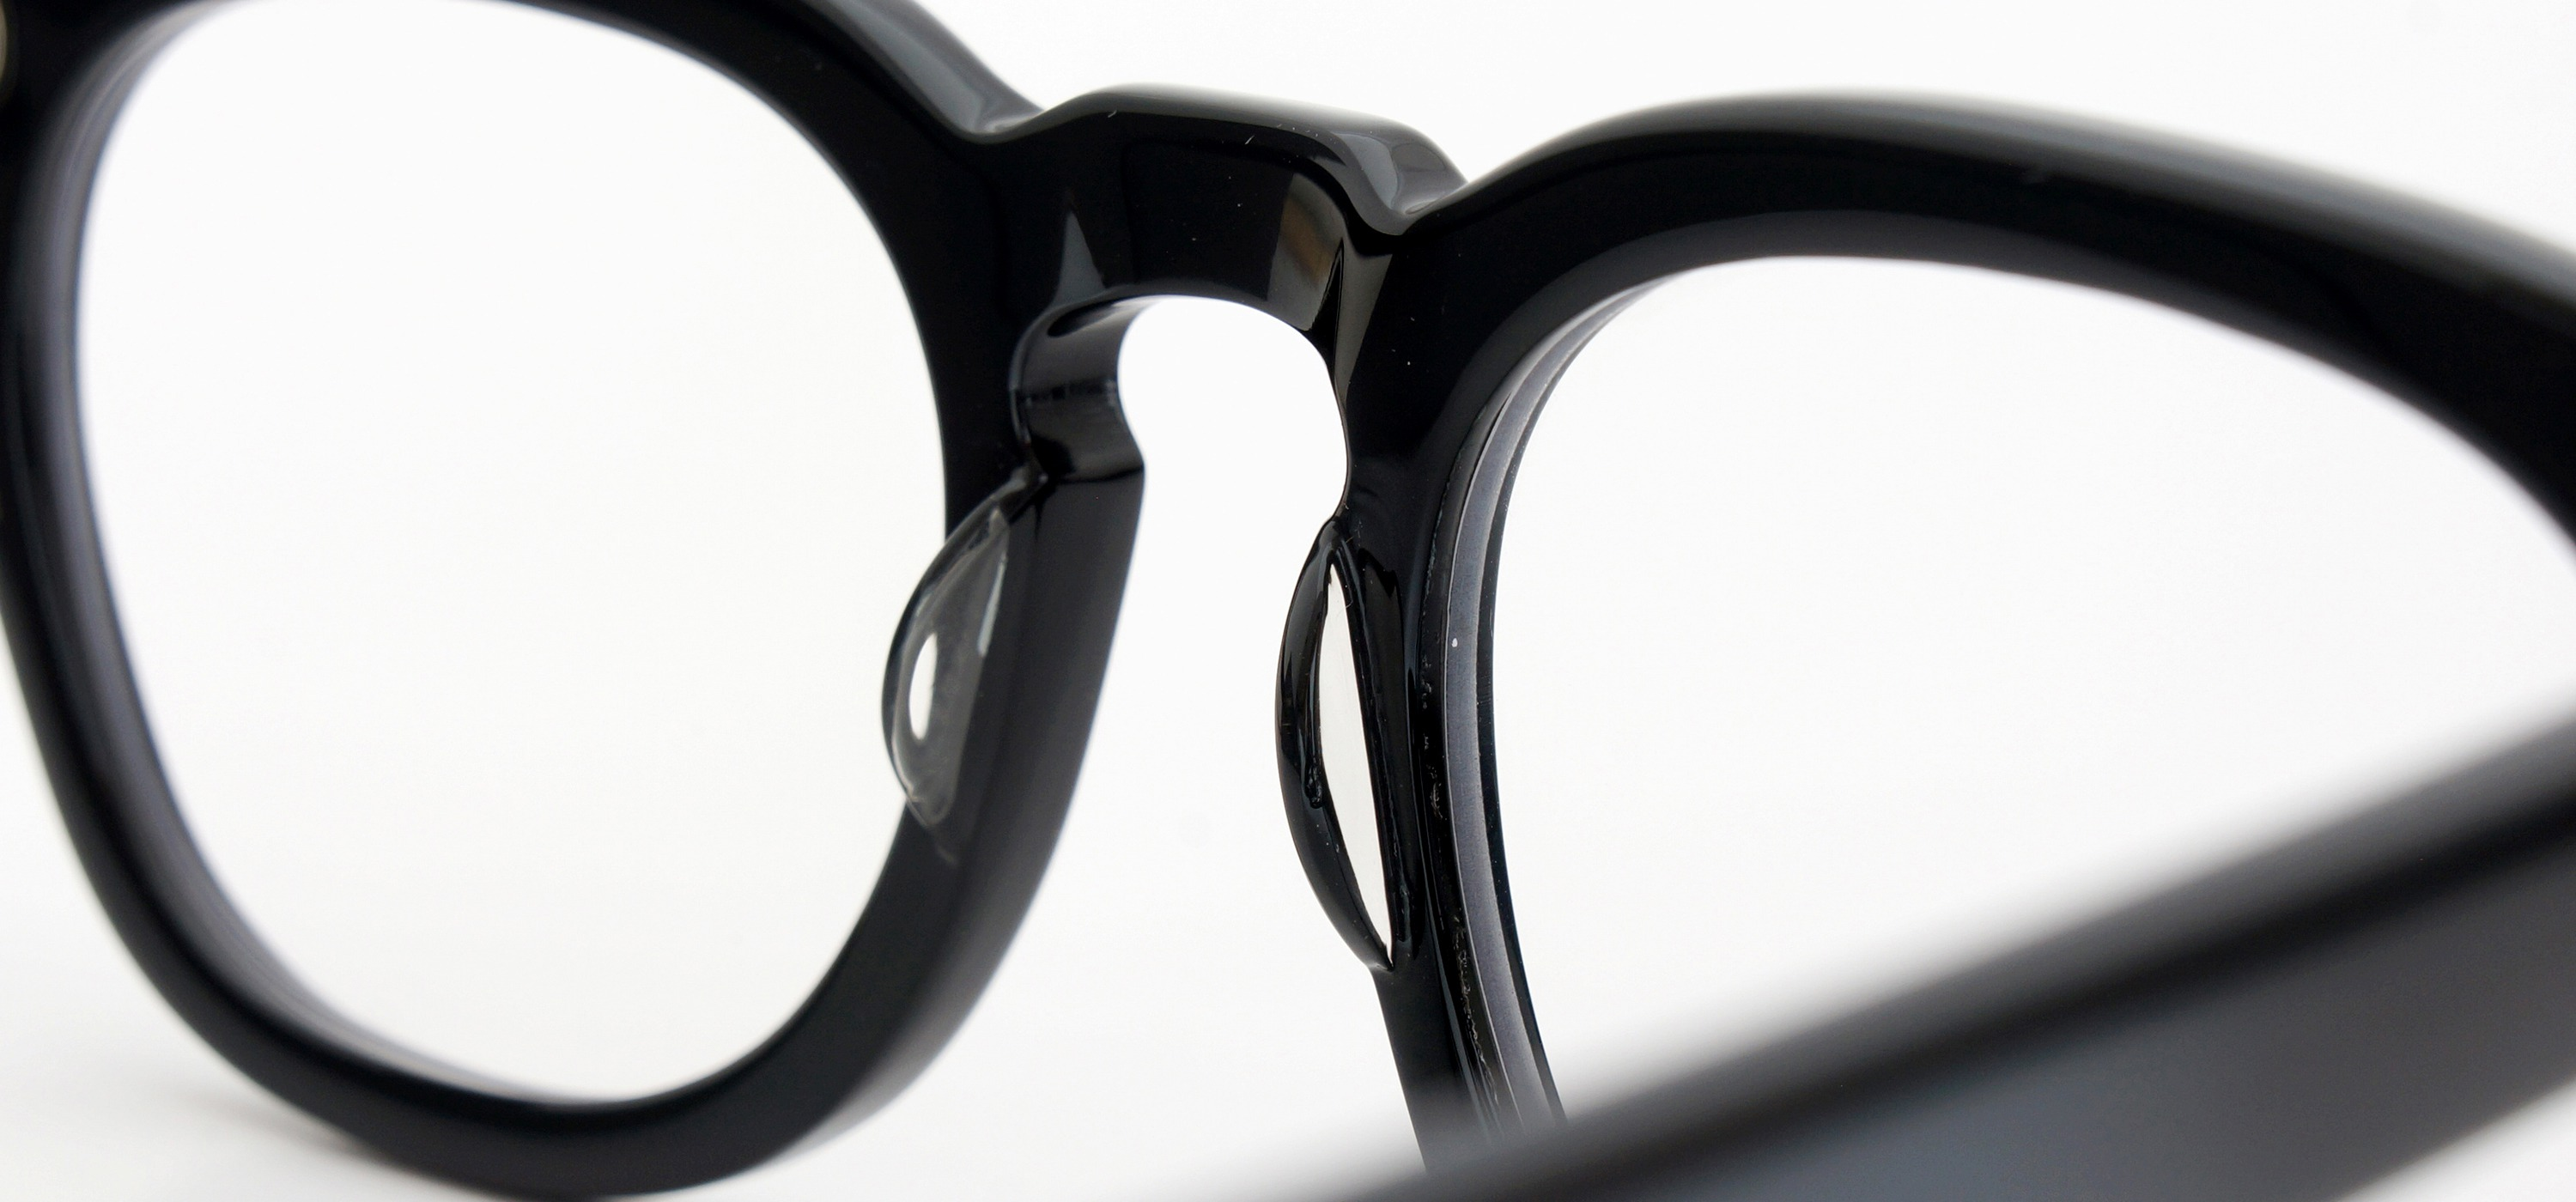 The Spectacle メガネ 1950s-70s TART OPTICAL ARNEL(FRAME USA) BLACK 48-22 イメージ9